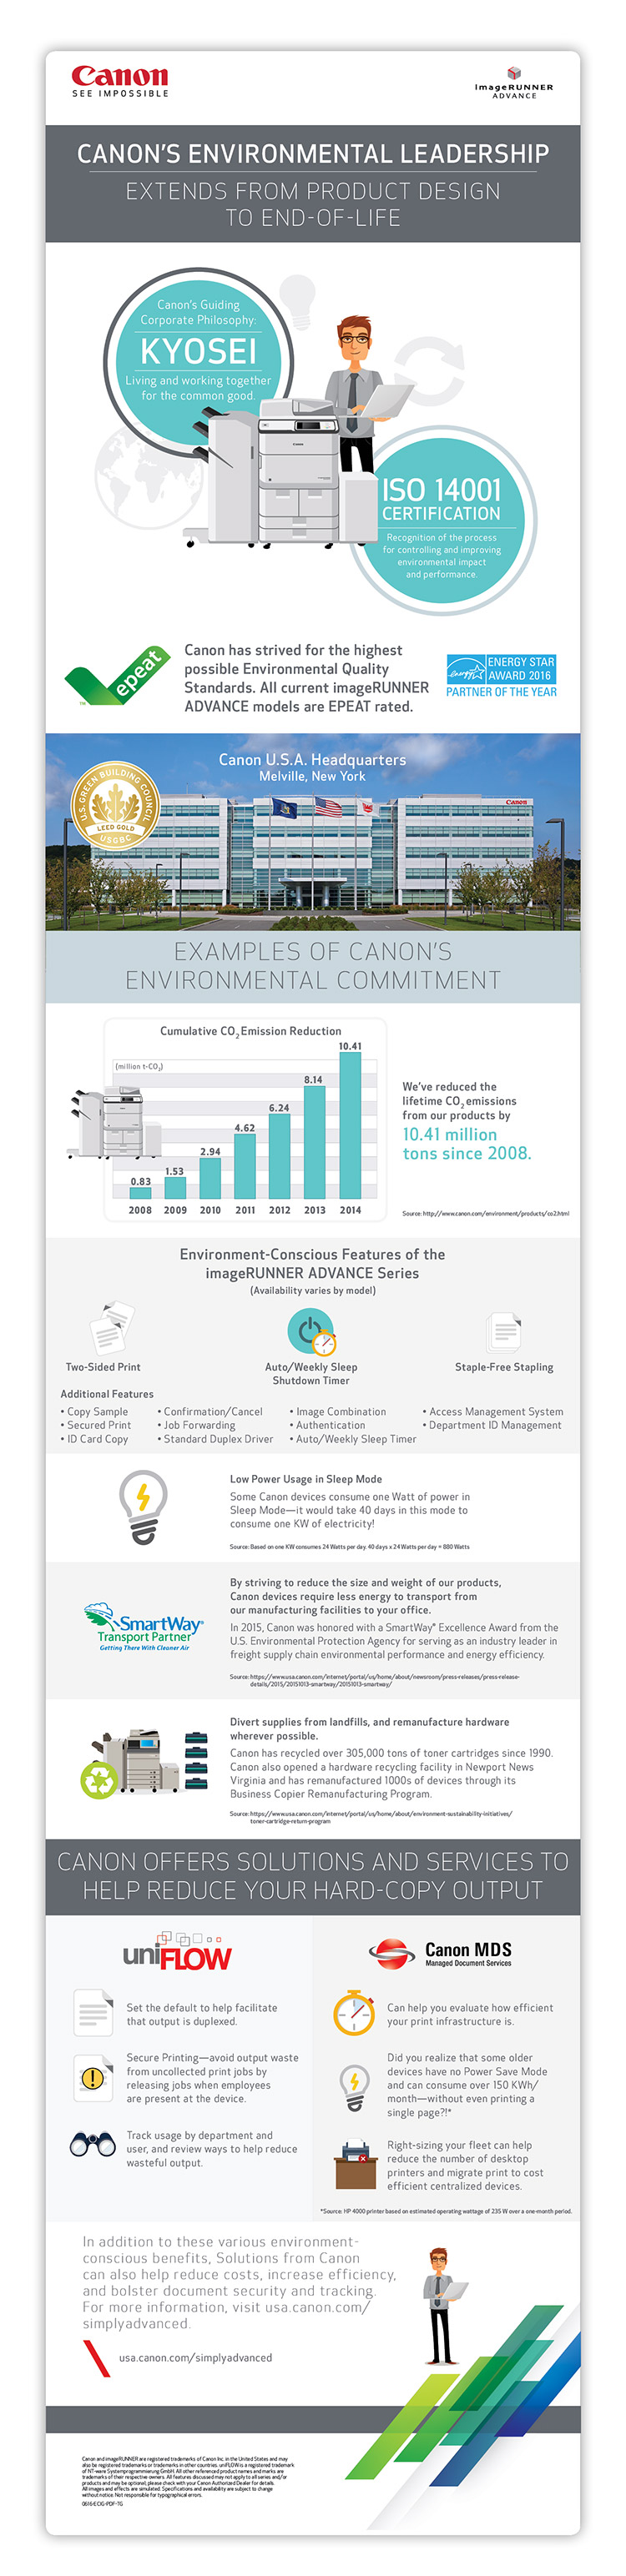 copier_Canon_and_Environment_Infographic_150_ppi